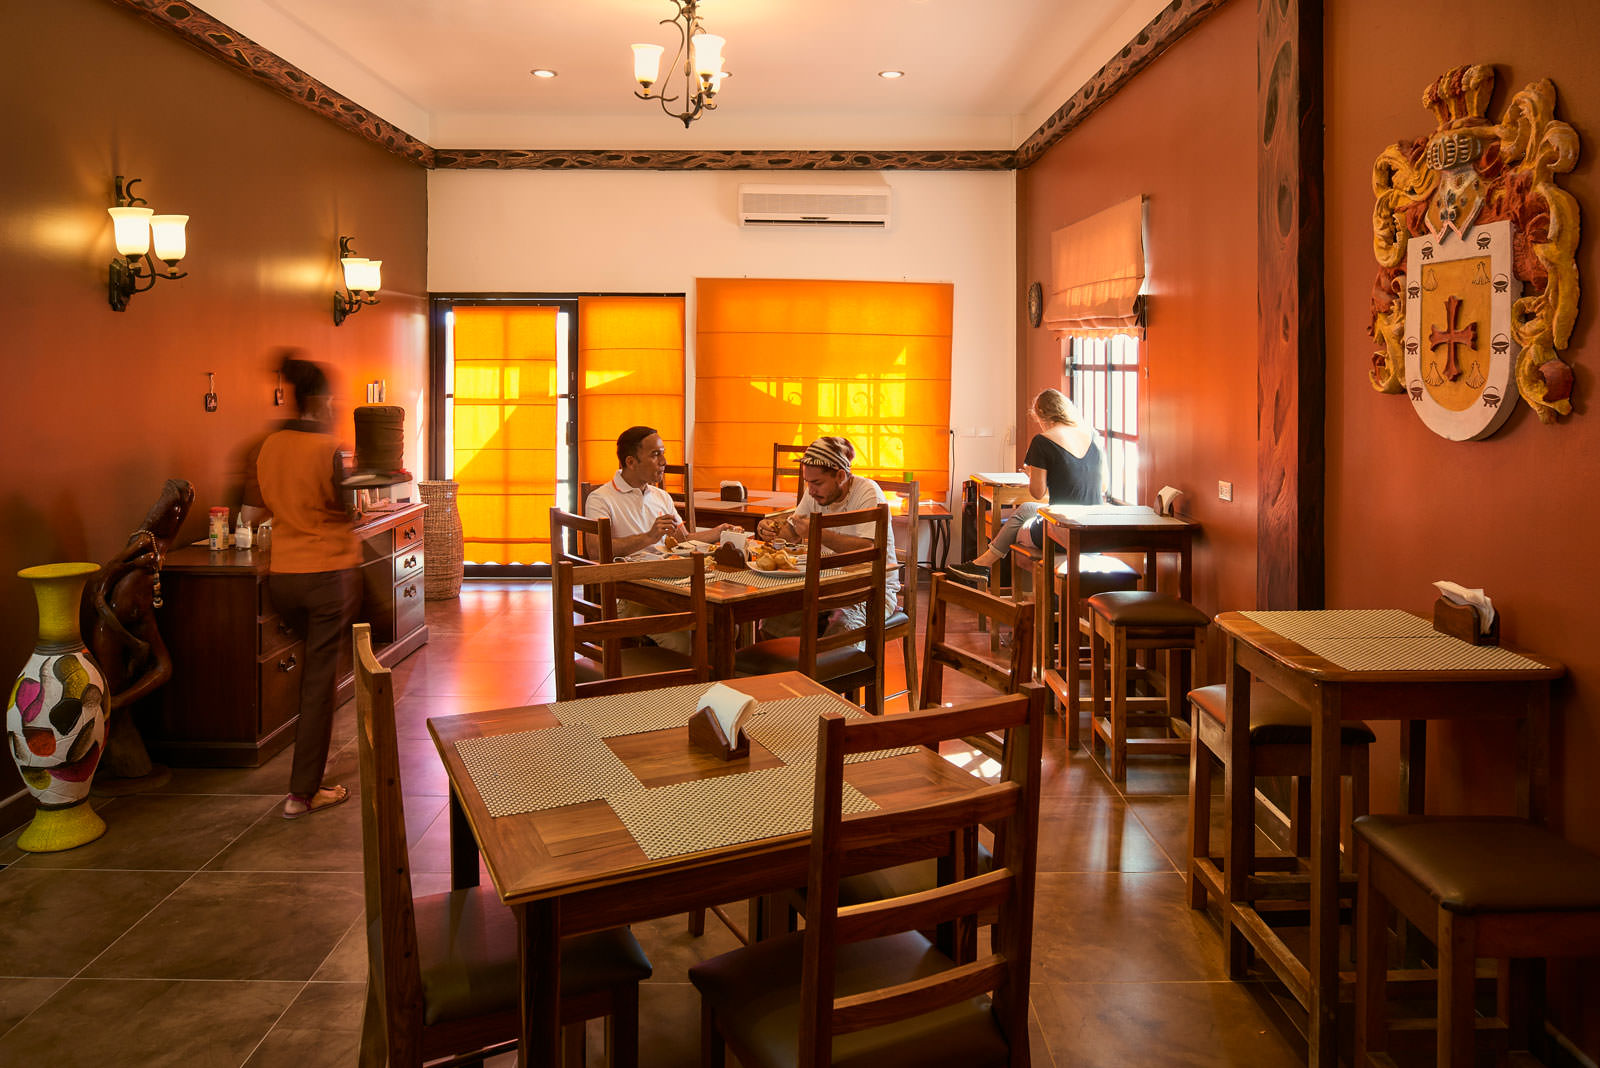 Cocina La Malinche, the ideal place to start your day